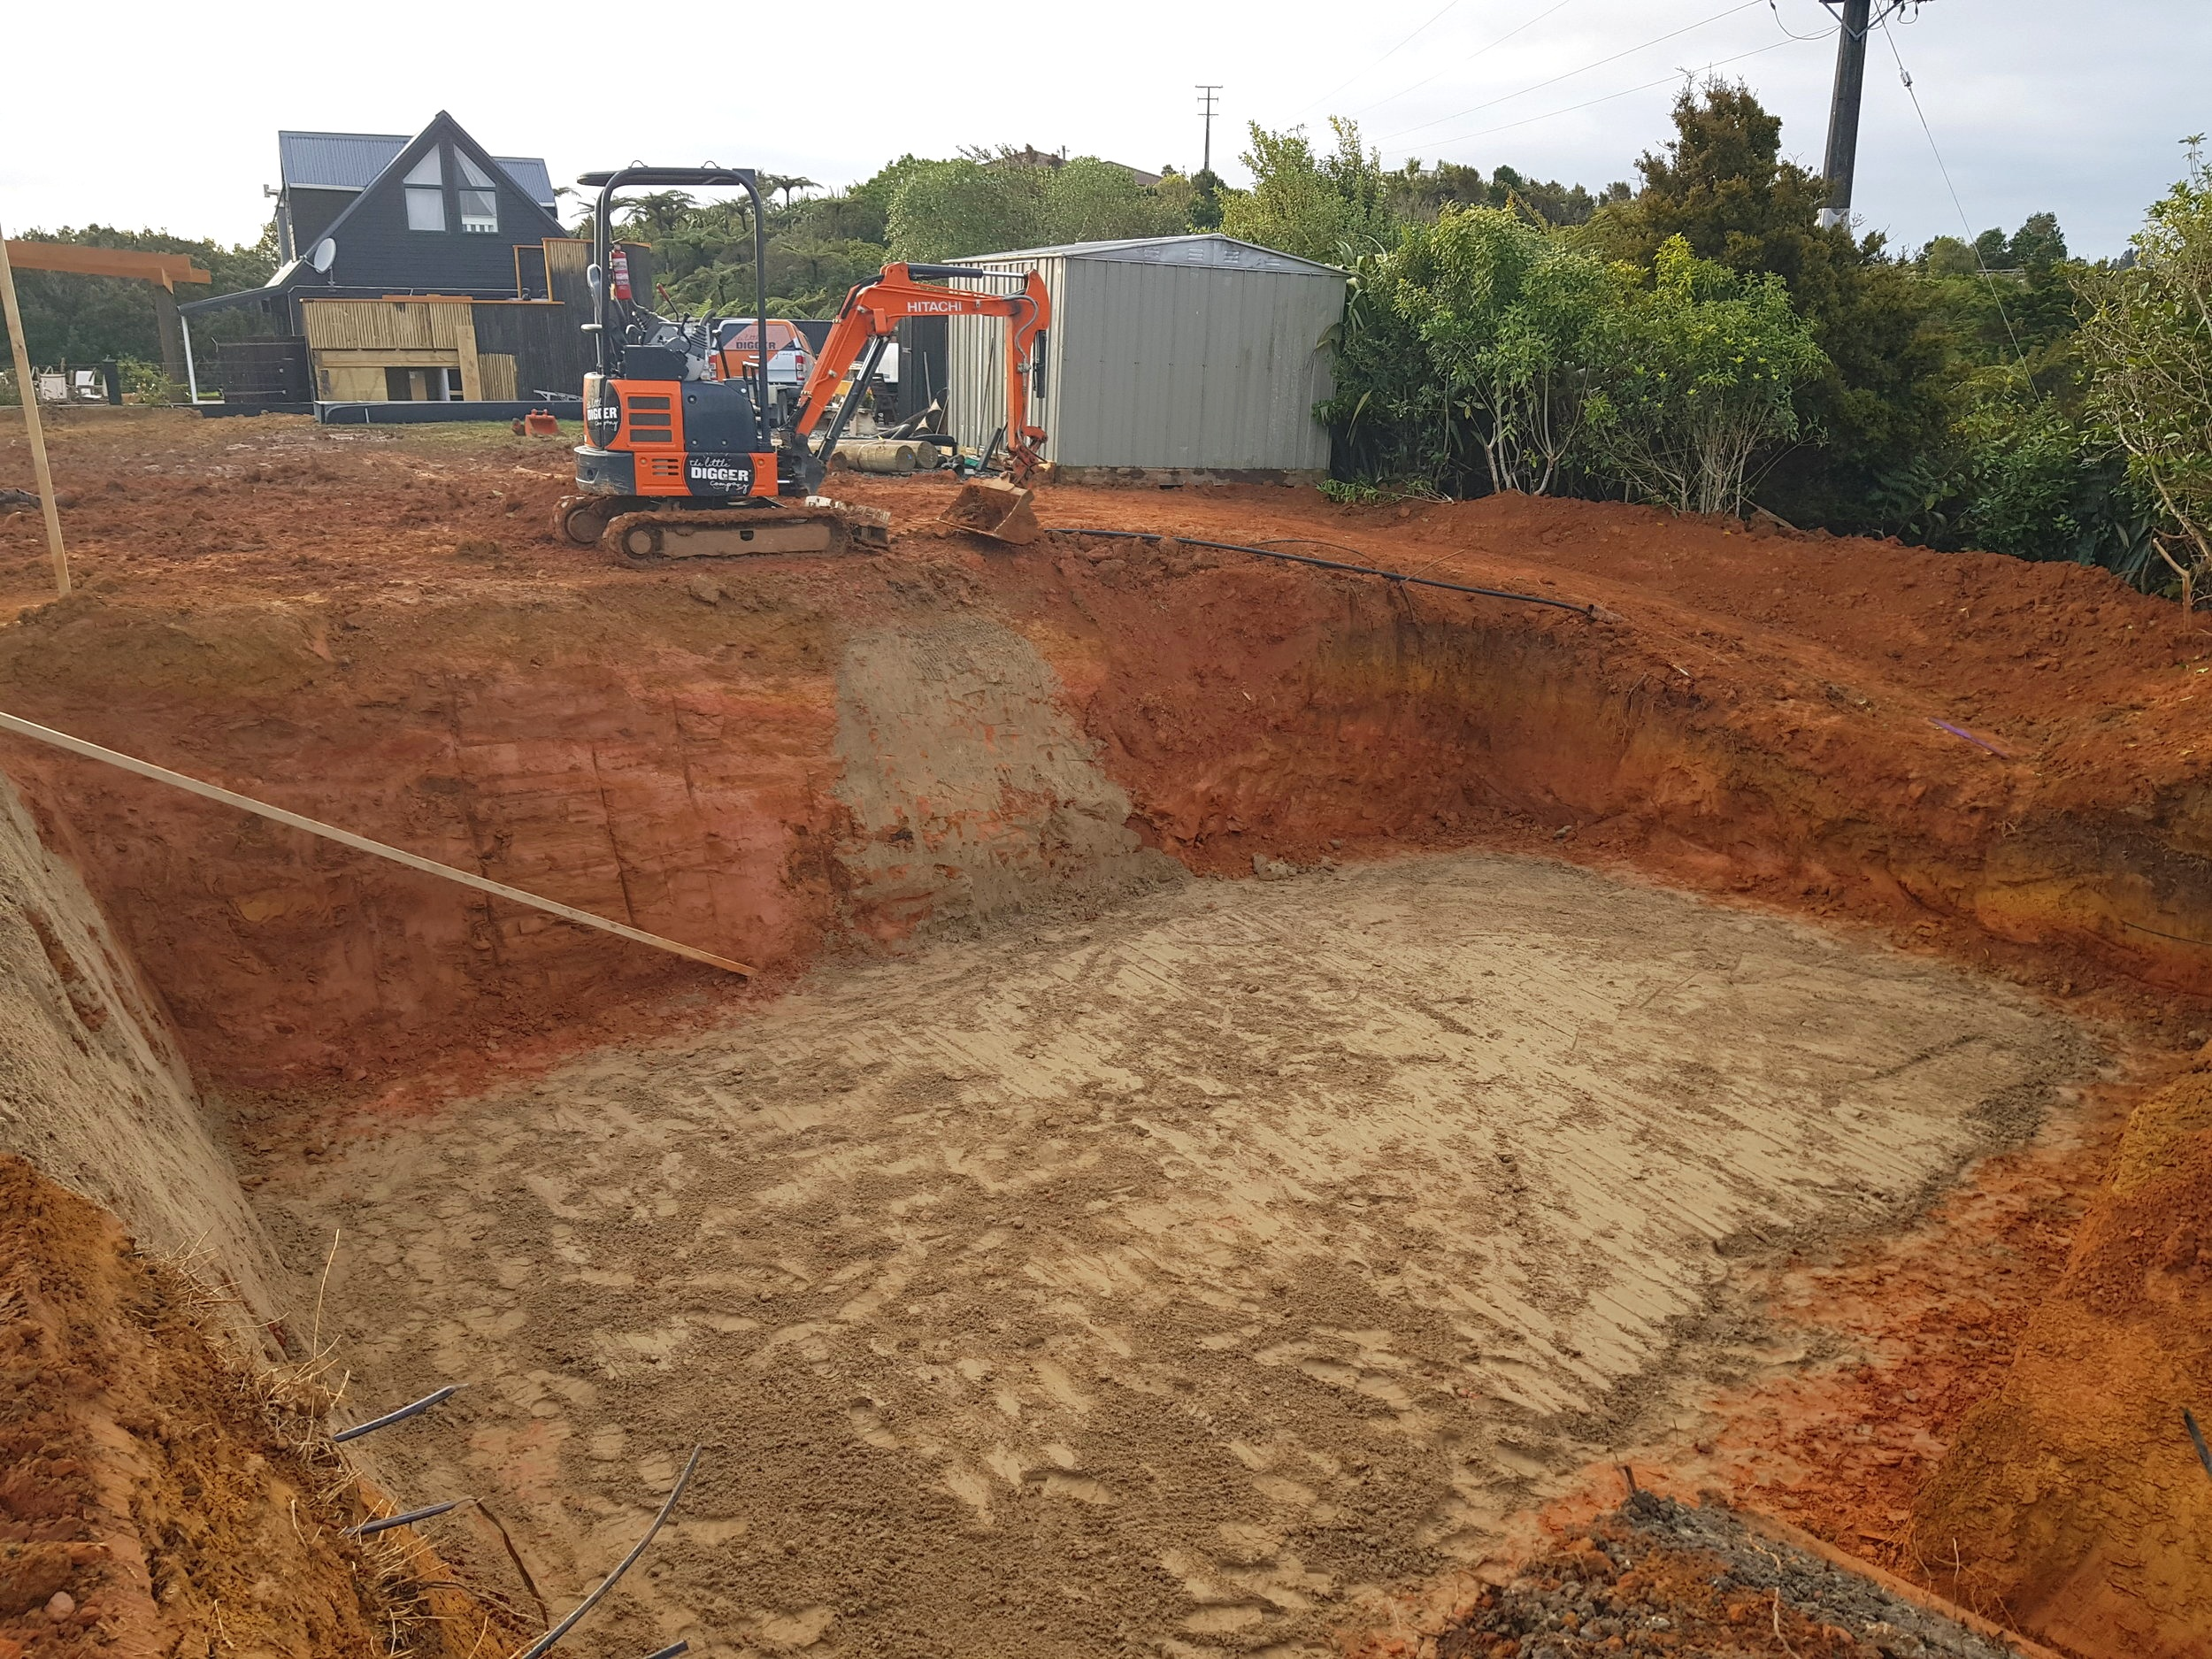 Matakana   The job was to create a space for 2x  30,000L water tanks.  The challenge was not to get stuck in the hole. How was it done? By building a track to access the pit.